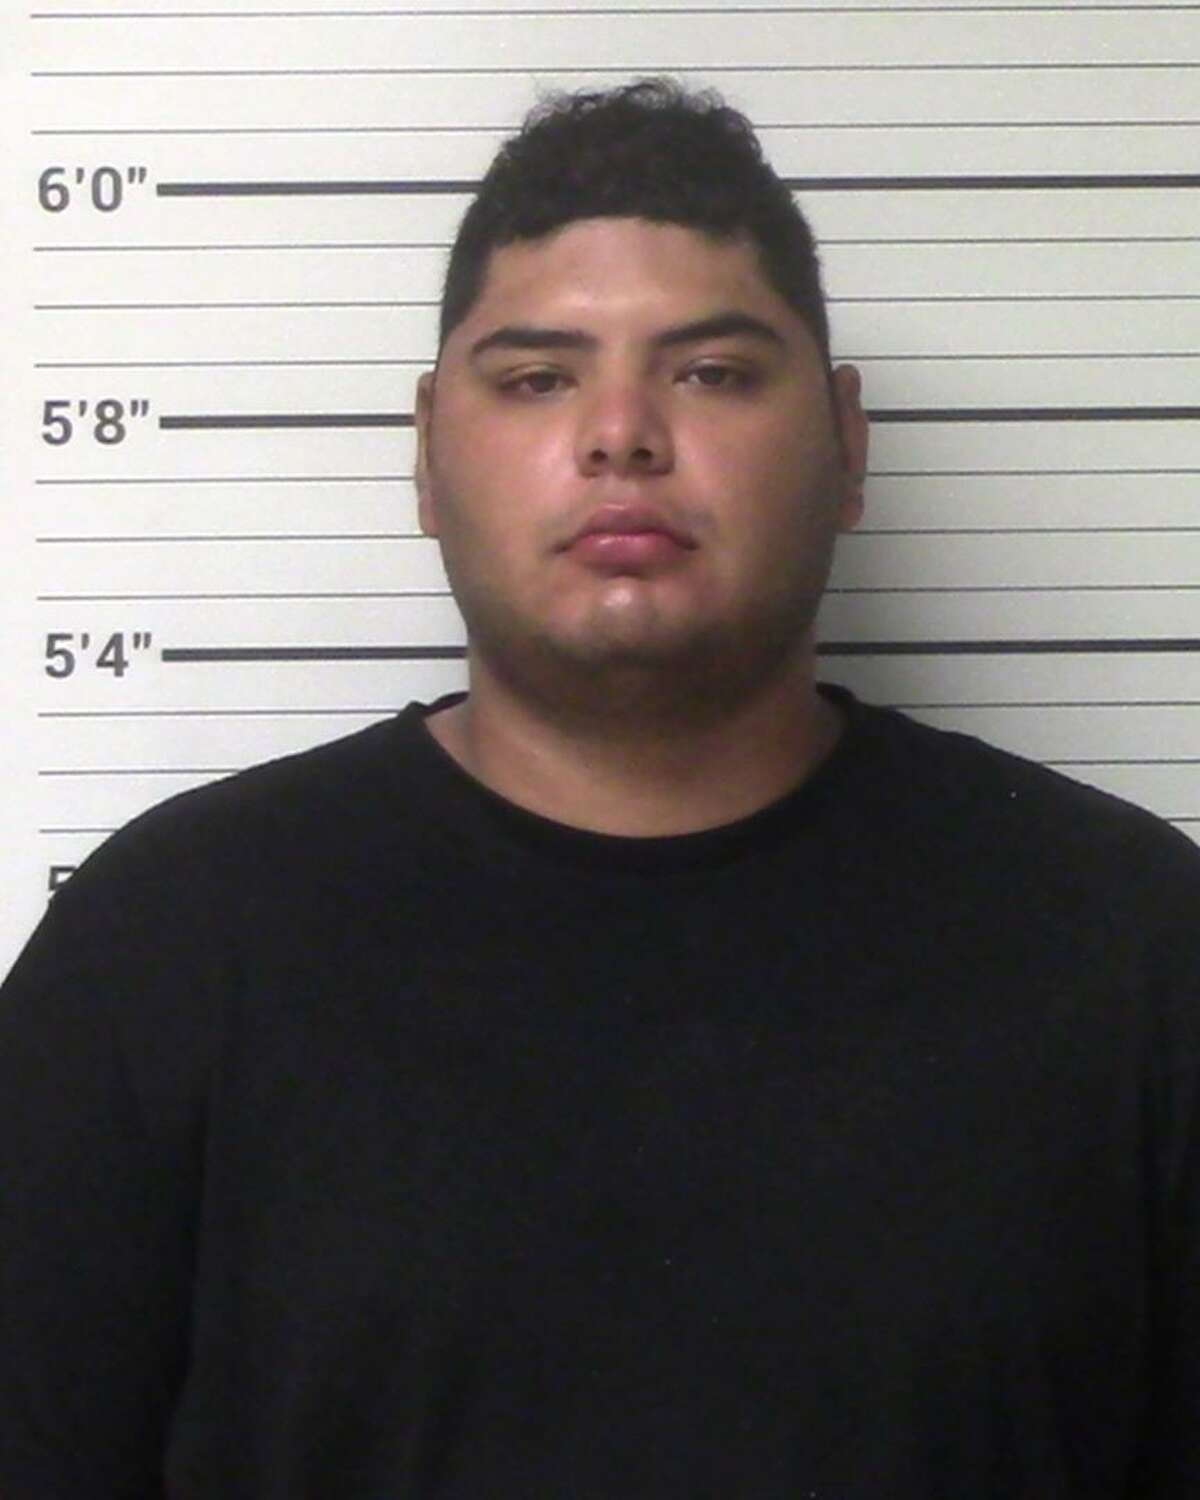 Isaac Rodriguez Barboza Jr., 23, is charged with intoxication assault with a vehicle causing serious bodily injury. Kerrville police say he veered off the road and drove into an 8-year-old girl's bedroom Aug. 6. The girl died at University Hospital on Monday.